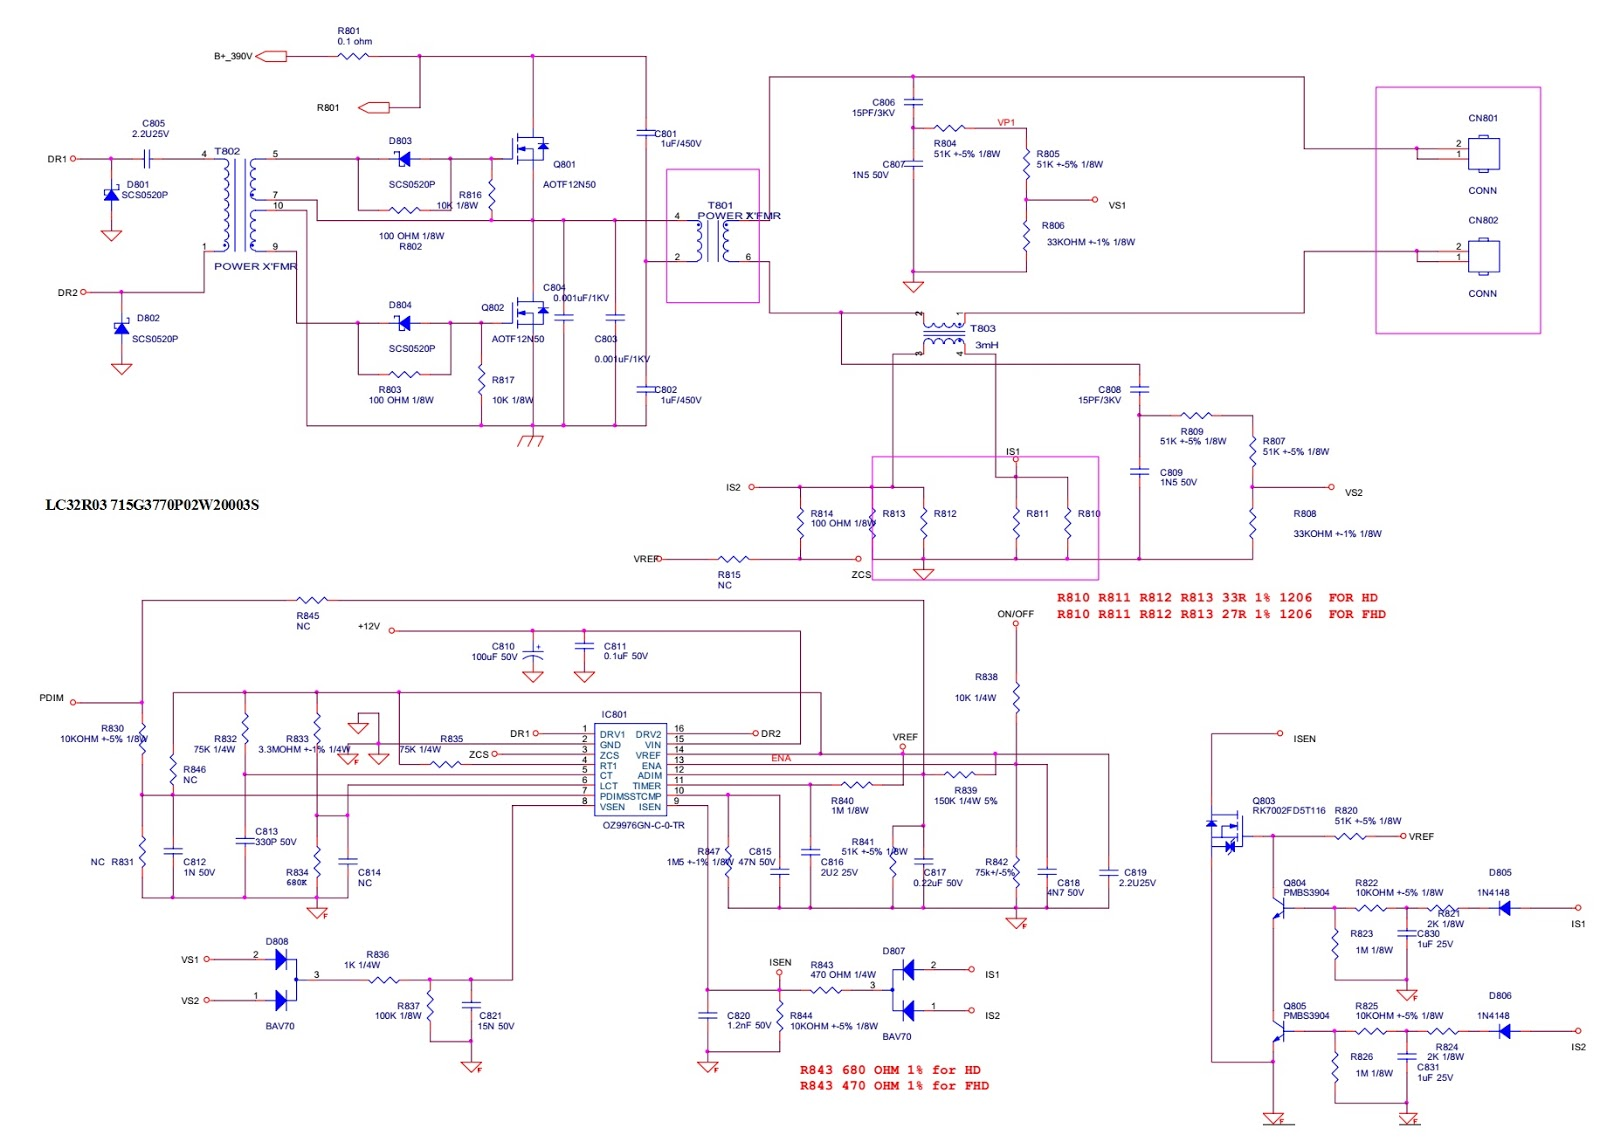 Aoc Lc32r03 And Lc42r03 Lcd Tv Smps Circuit Diagram Electro Help